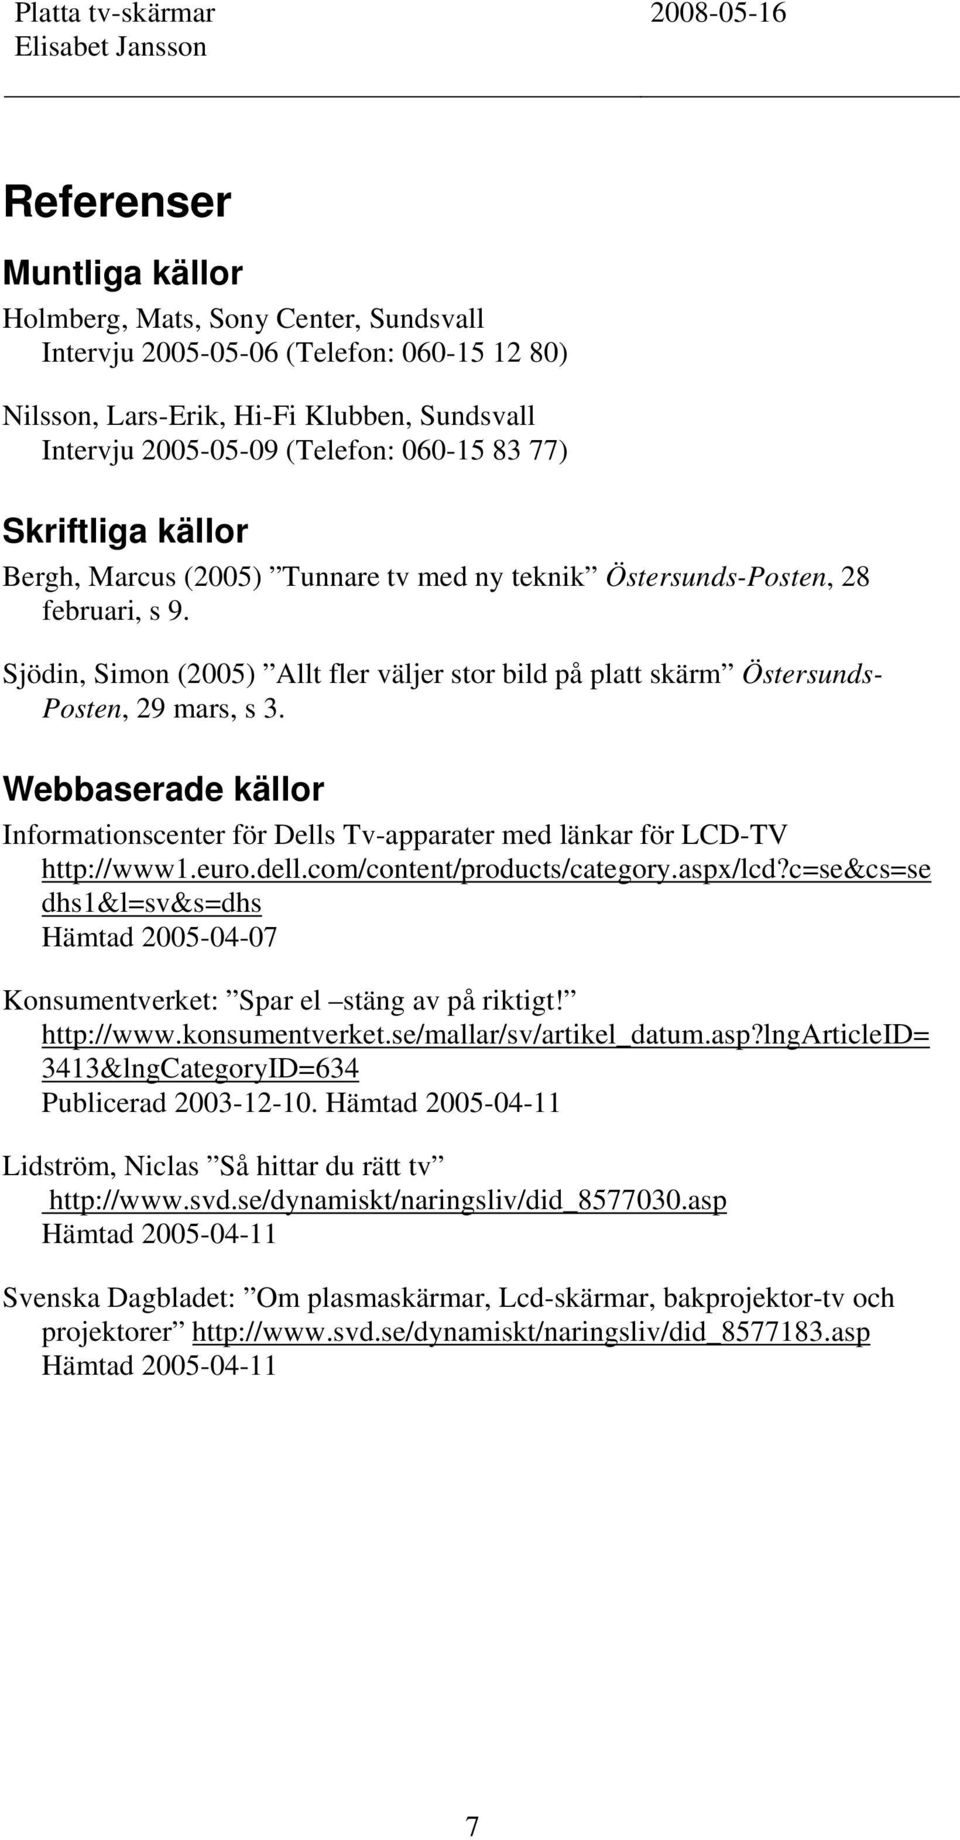 Webbaserade källor Informationscenter för Dells Tv-apparater med länkar för LCD-TV http://www1.euro.dell.com/content/products/category.aspx/lcd?